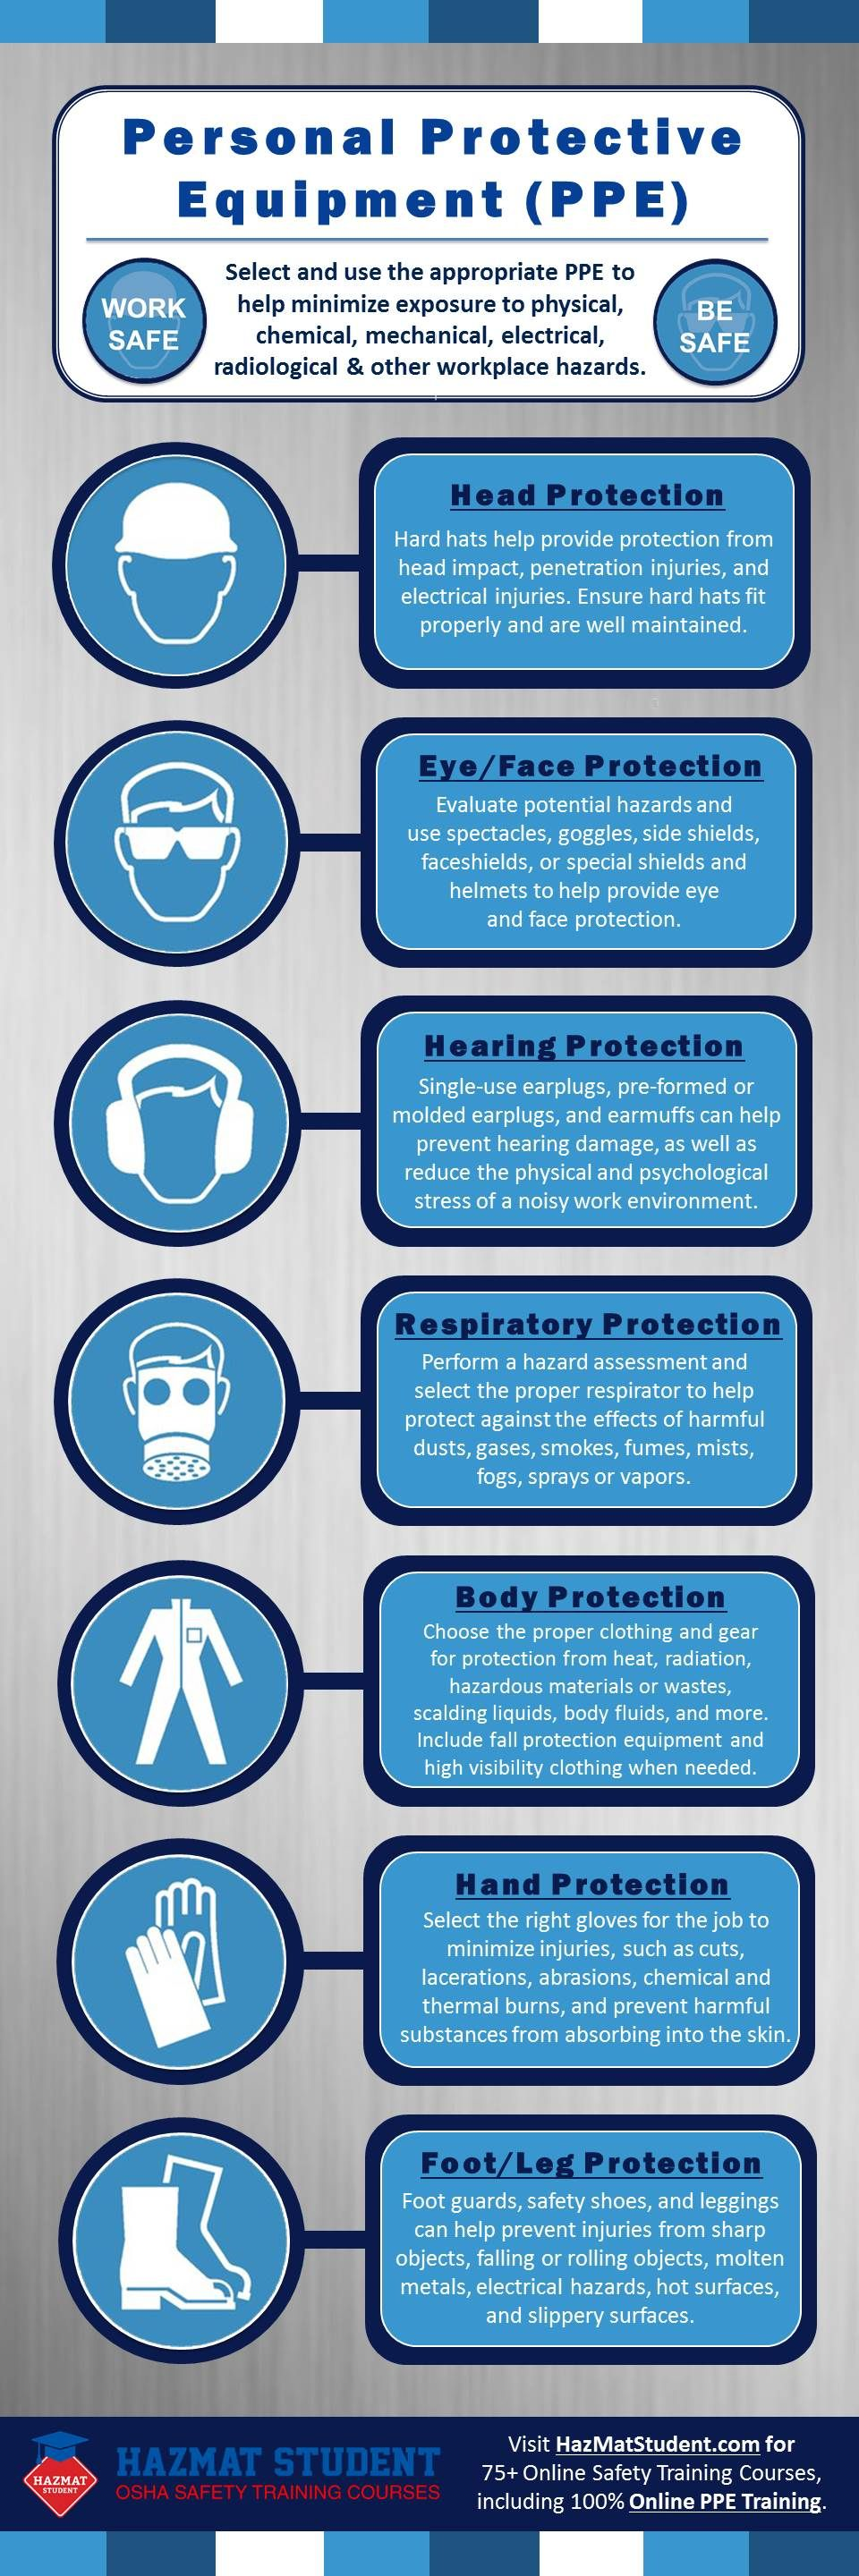 Overview of basic Personal Protective Equipment (PPE) to be reviewed ...